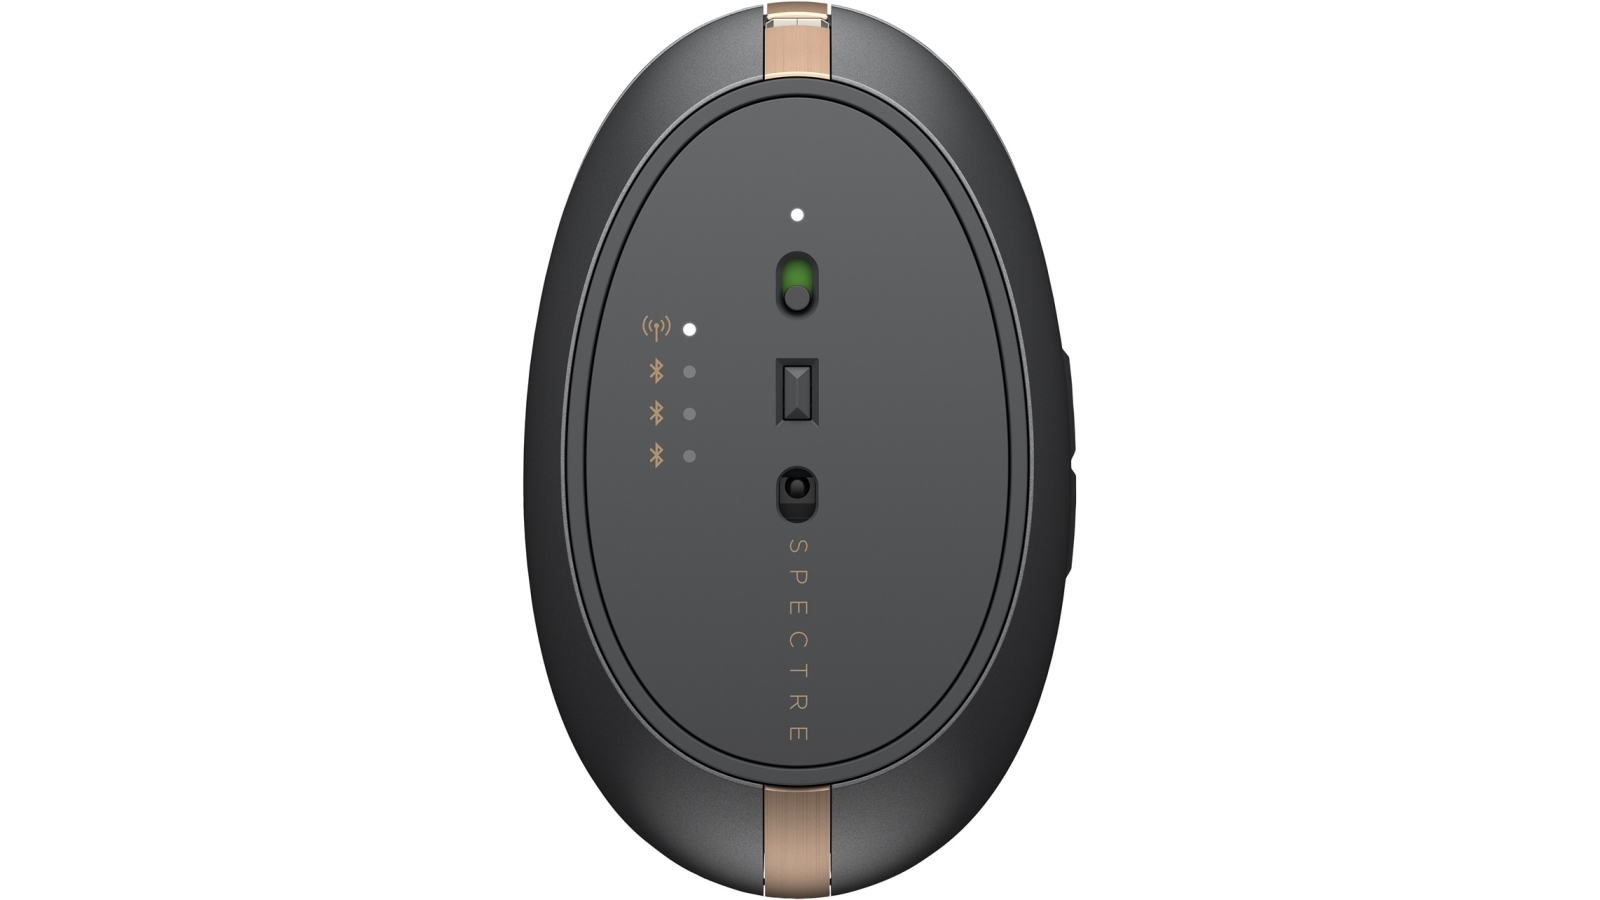 HP Spectre 700 Rechargeable Mouse - Dark Ash Silver